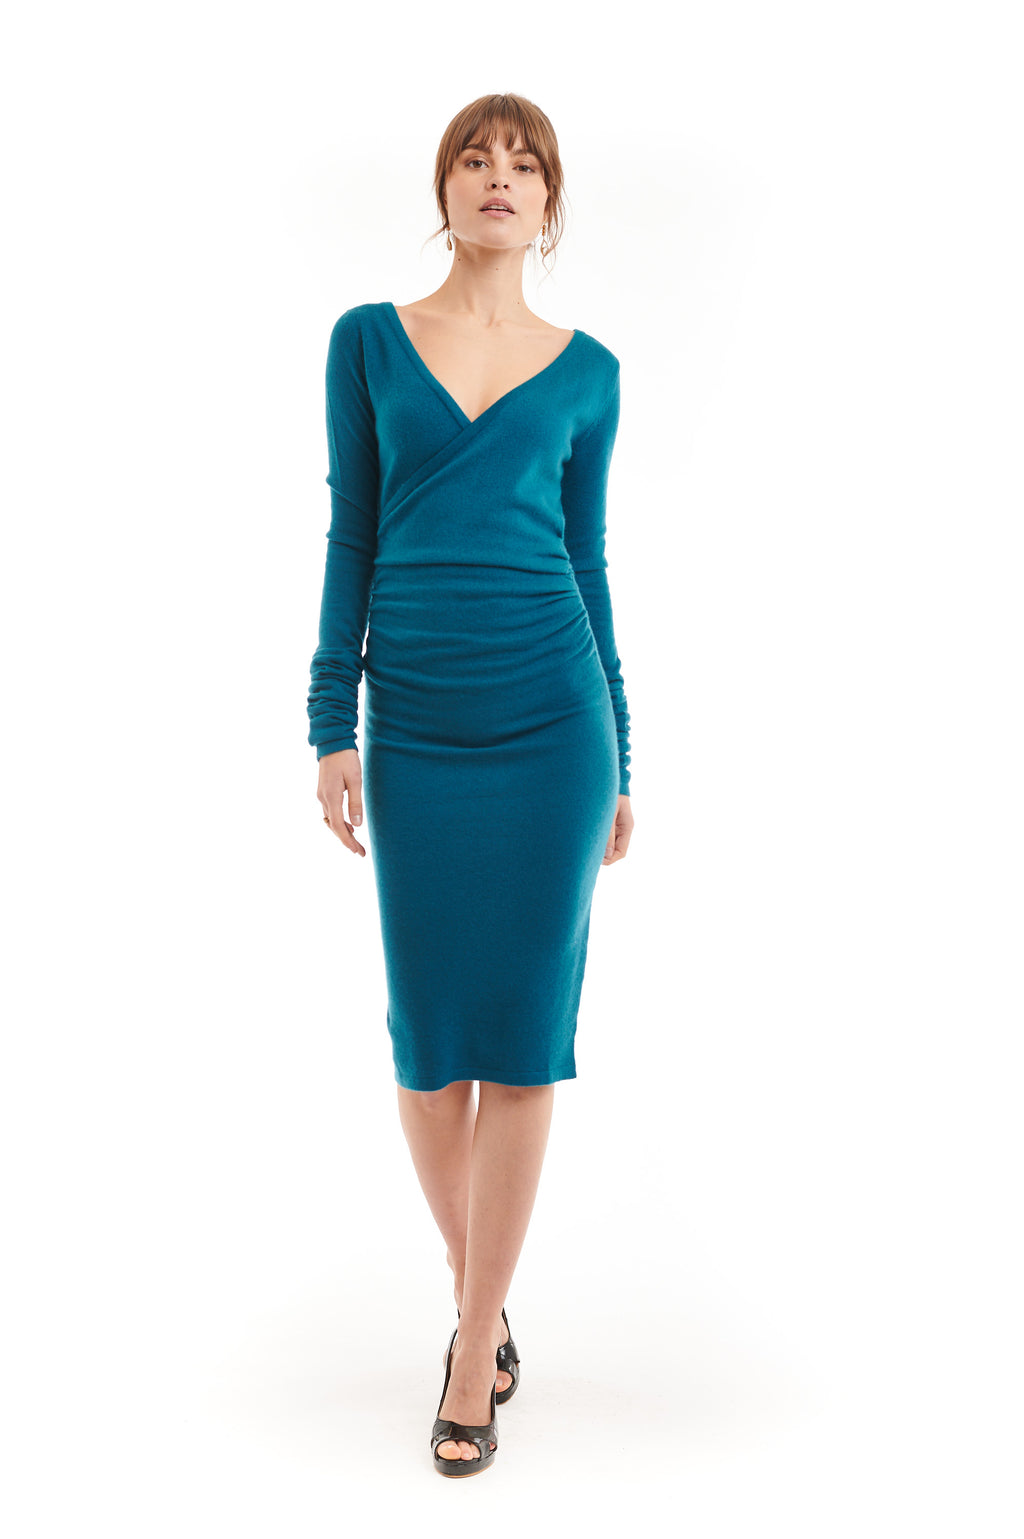 Cashmere Crossover Dress Teal - MUDRA